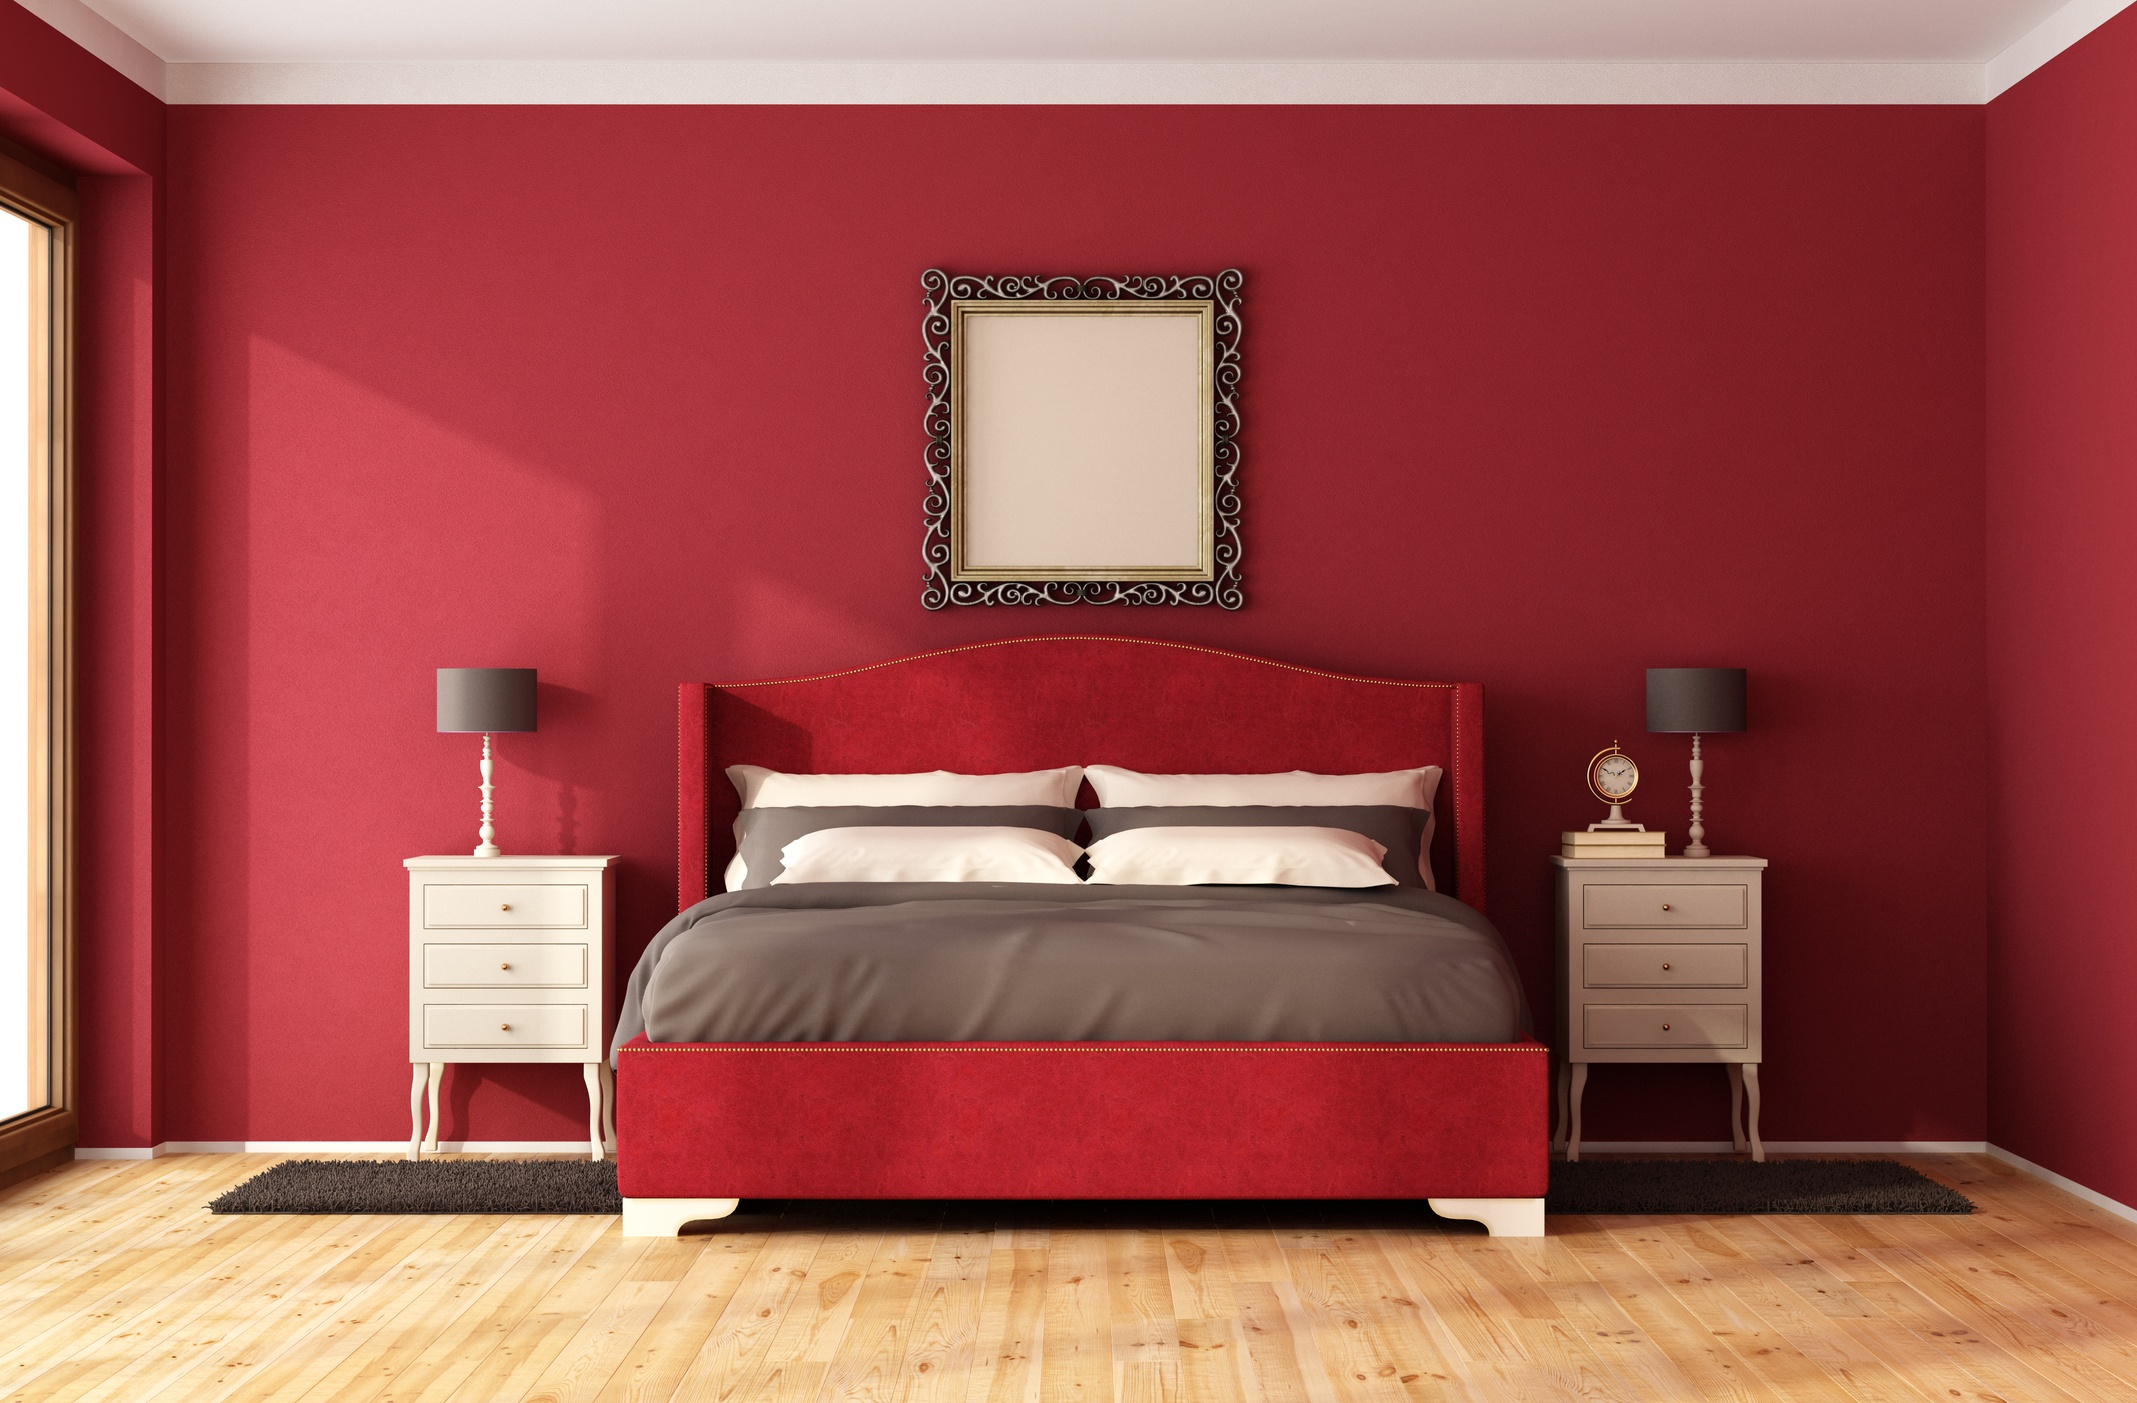 These Are the Worst Paint Colors You Should Never Use in